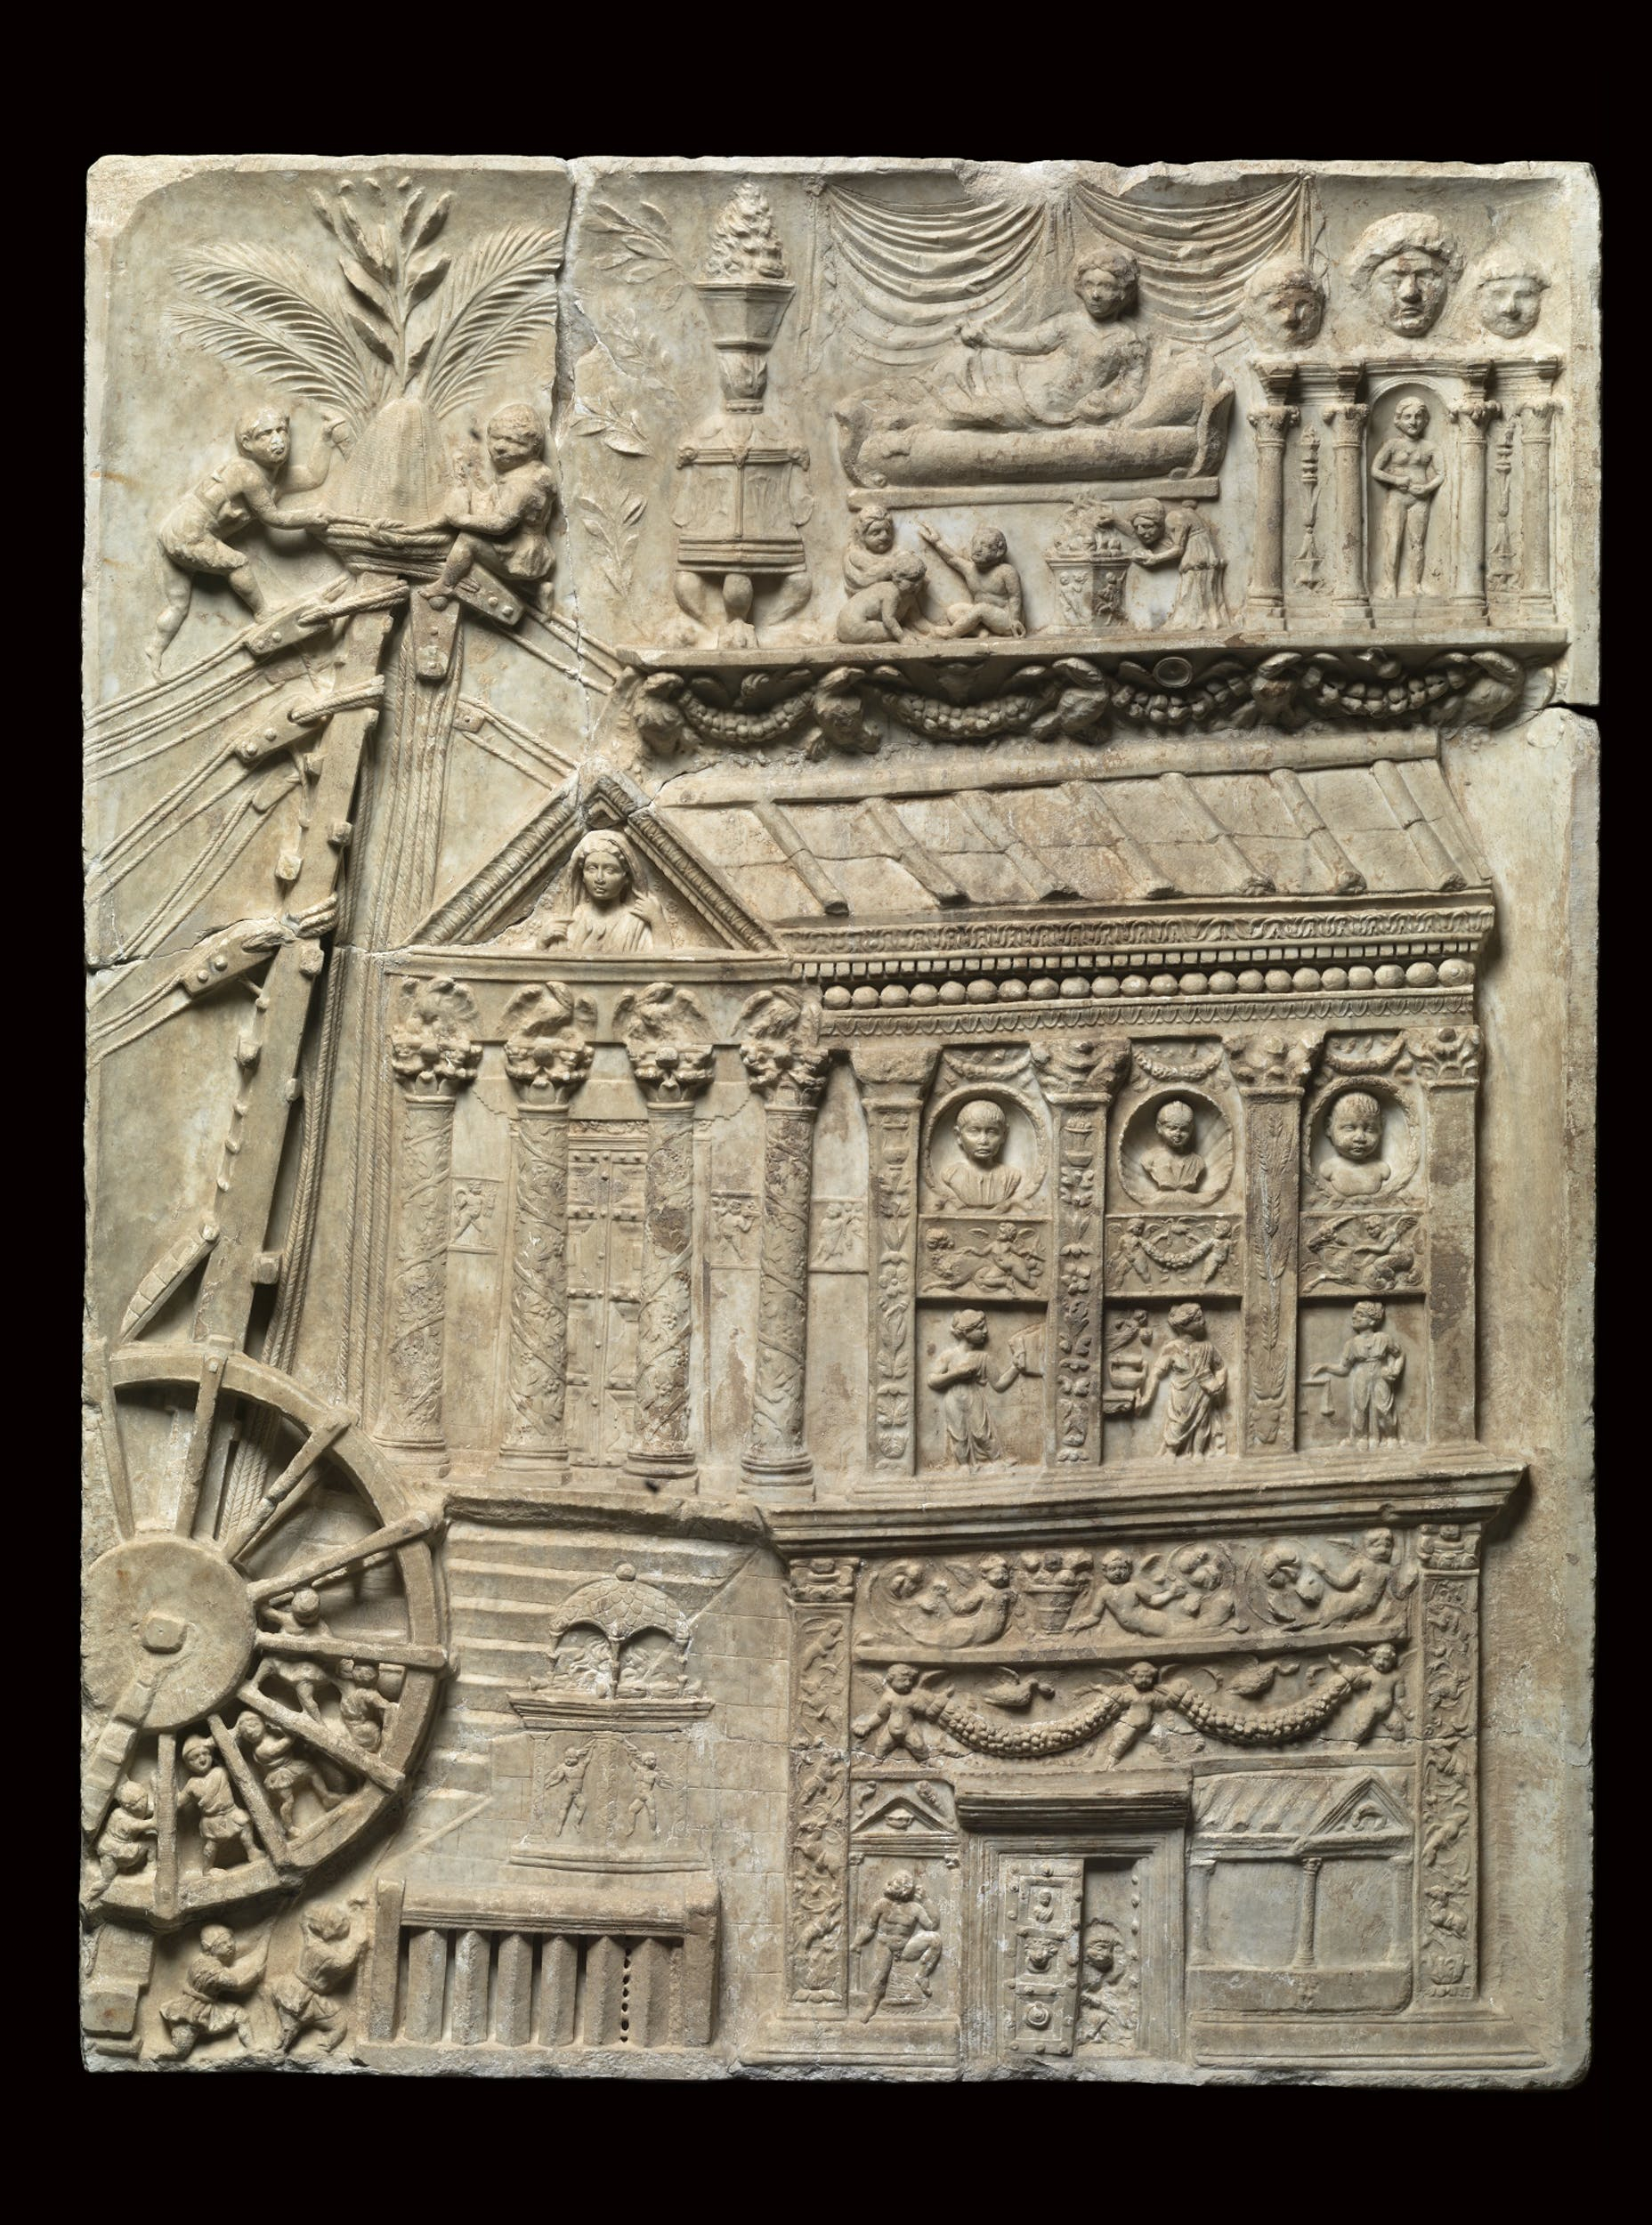 Fig. 12 Rilievo raffigurante un edificio sepolcrale e un macchinario da cantiere 100-120 d.C. circa marmo lunense Museo Gregoriano Profano, Musei Vaticani, Città del Vaticano | Fig. 12 Relief Portraying a Sepulchral Building and a Construction Machine c. 100-120 B.C. Luni marble Museo Gregoriano Profano, Musei Vaticani, Vatican City